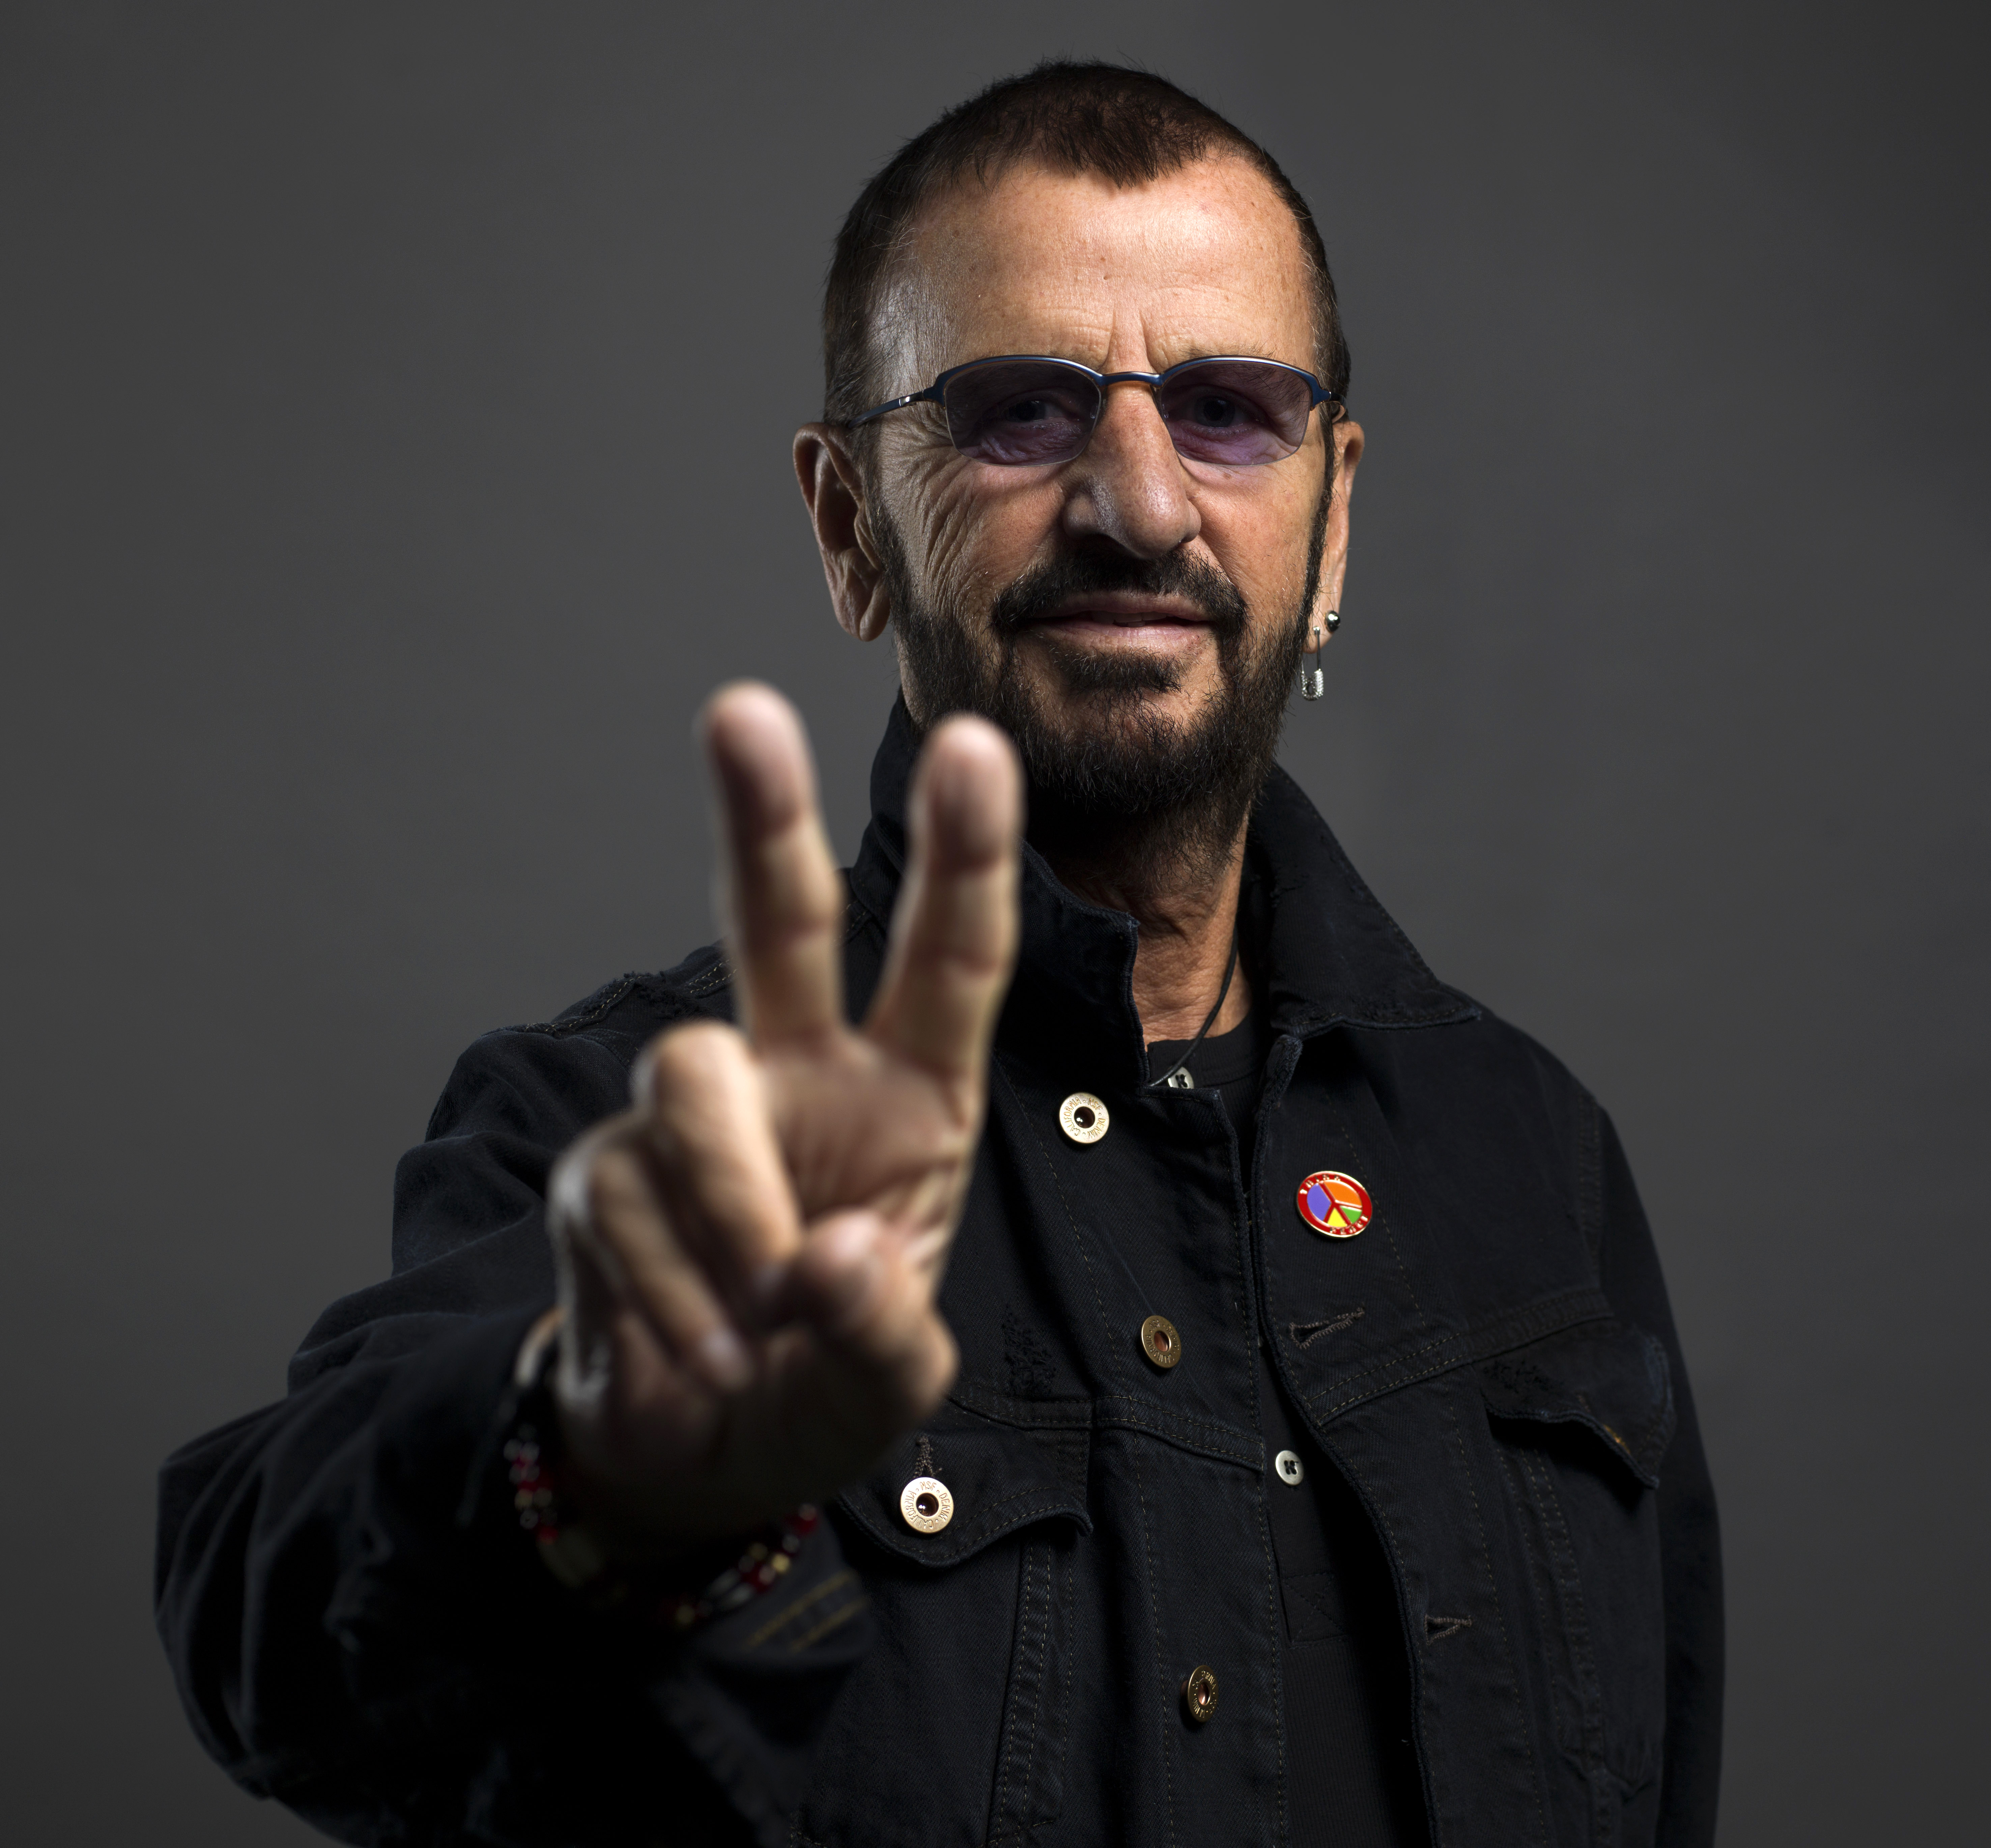 ringo starr - photo #1